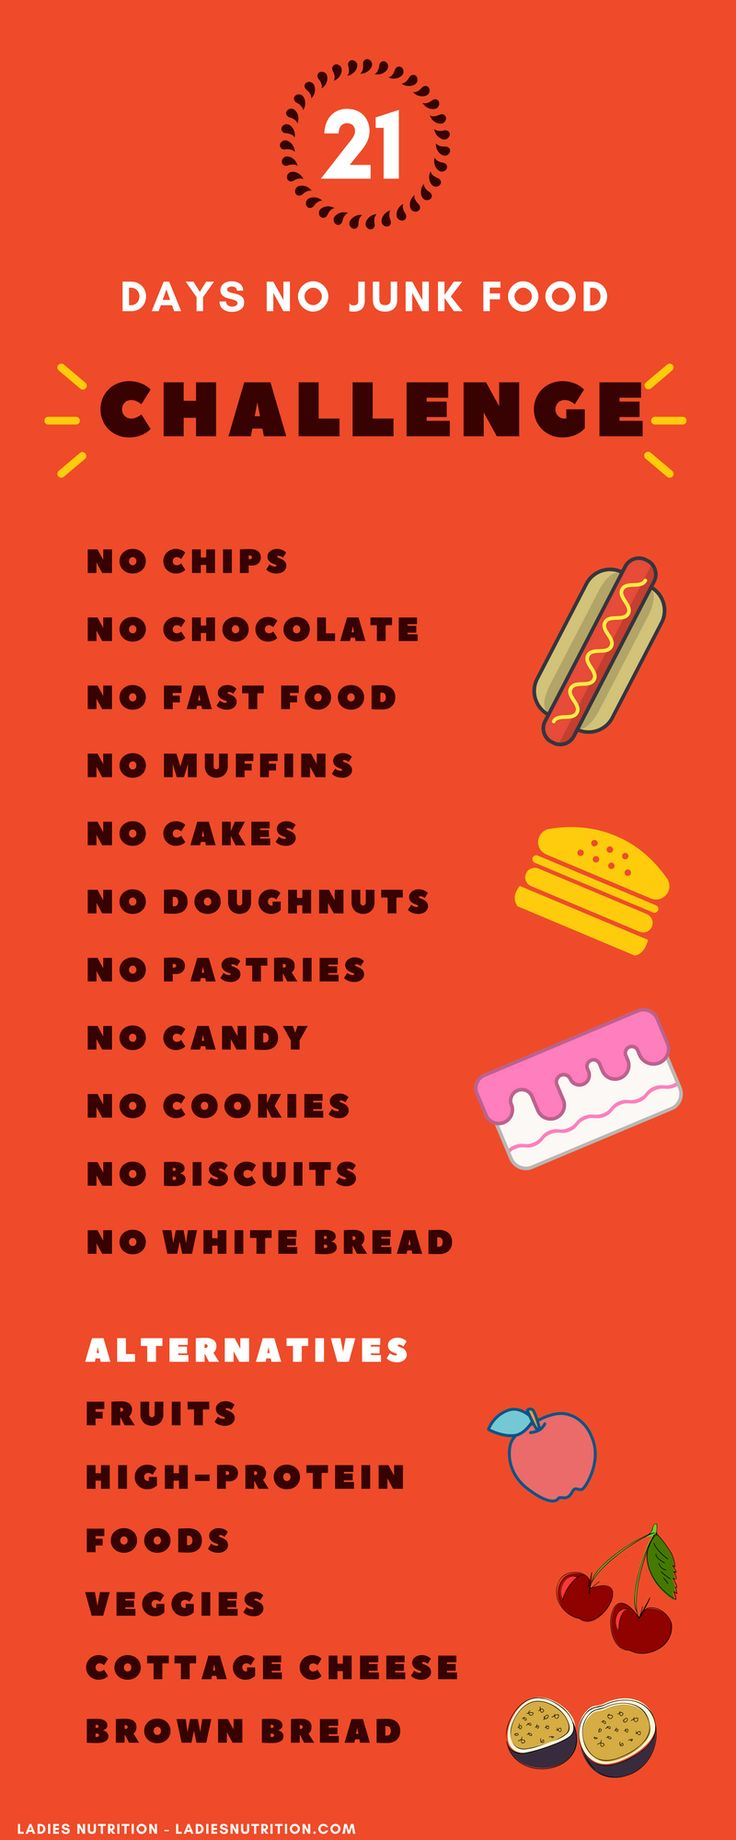 Do you feel constantly tired? If the answer is yes, you've been eating junk food for a really long time and you need the 21 day no junk food challenge!